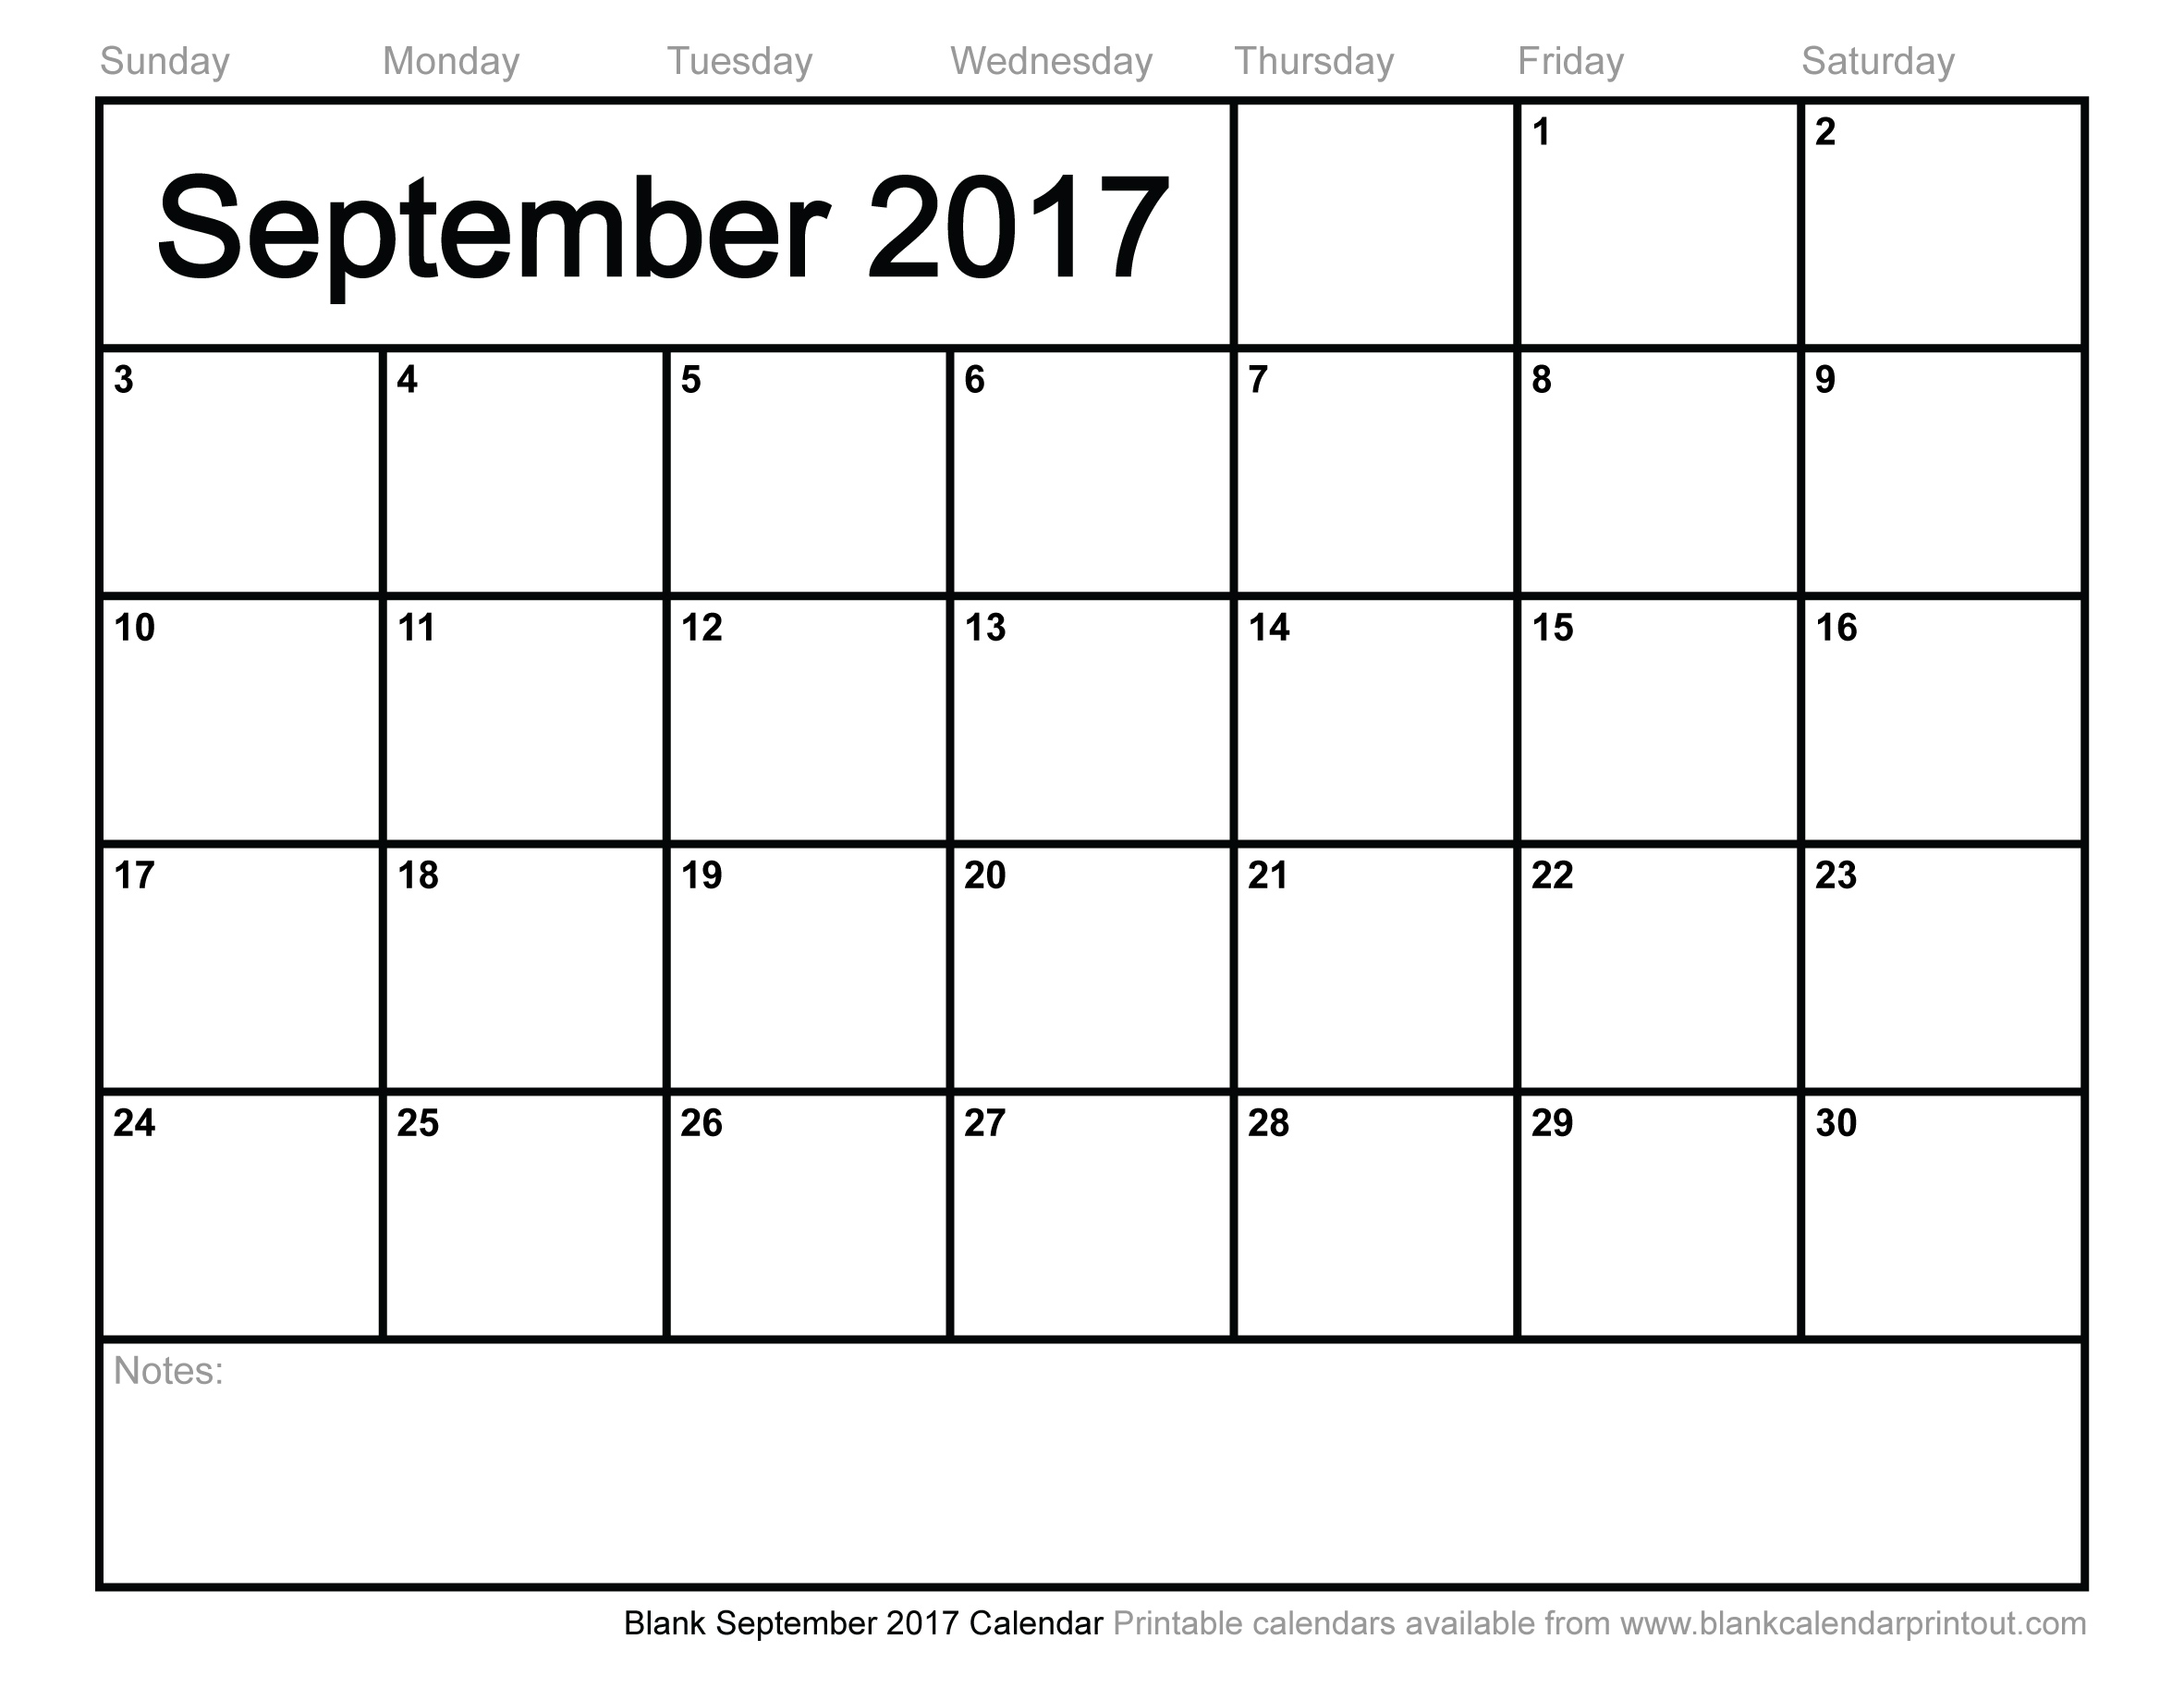 Blank-September-2017-Calendar regarding Full Sheet November Calendar Template